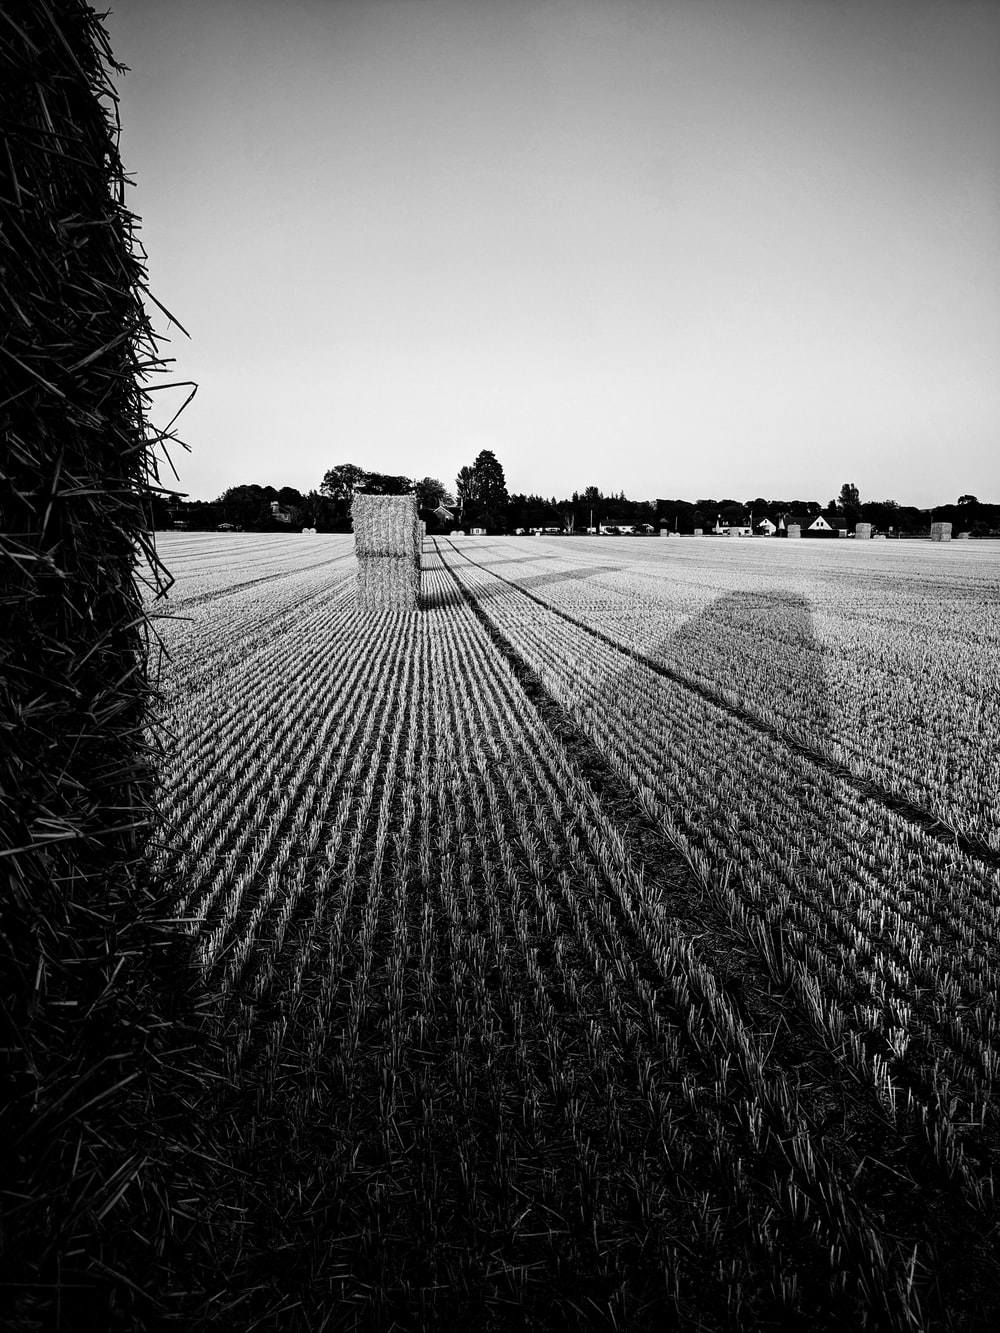 grayscale photo of a farm field